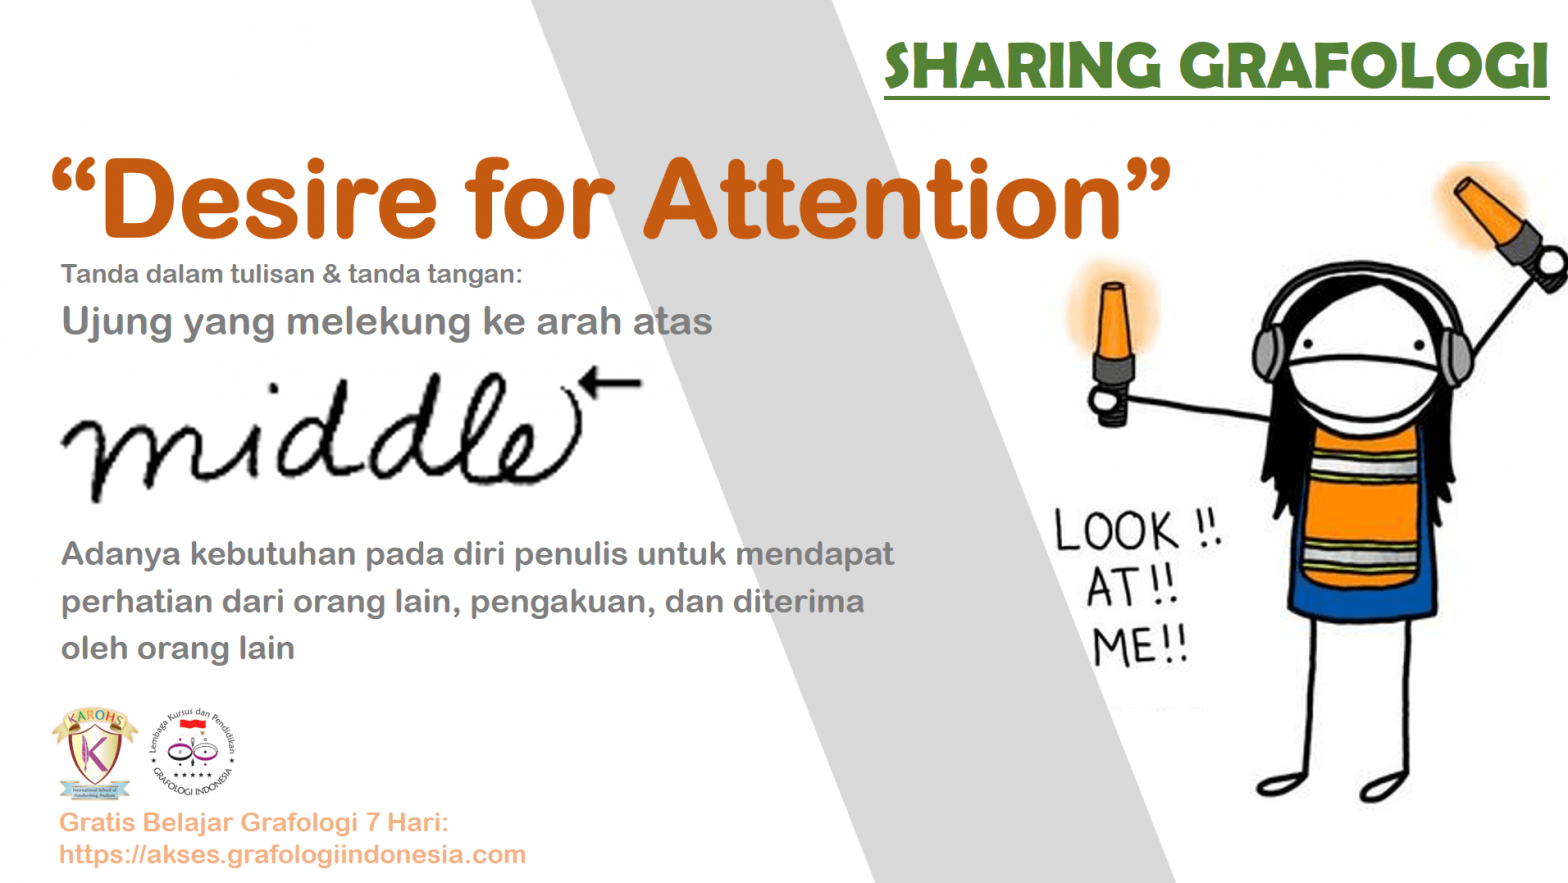 Sharing Grafologi - Desire for Attention